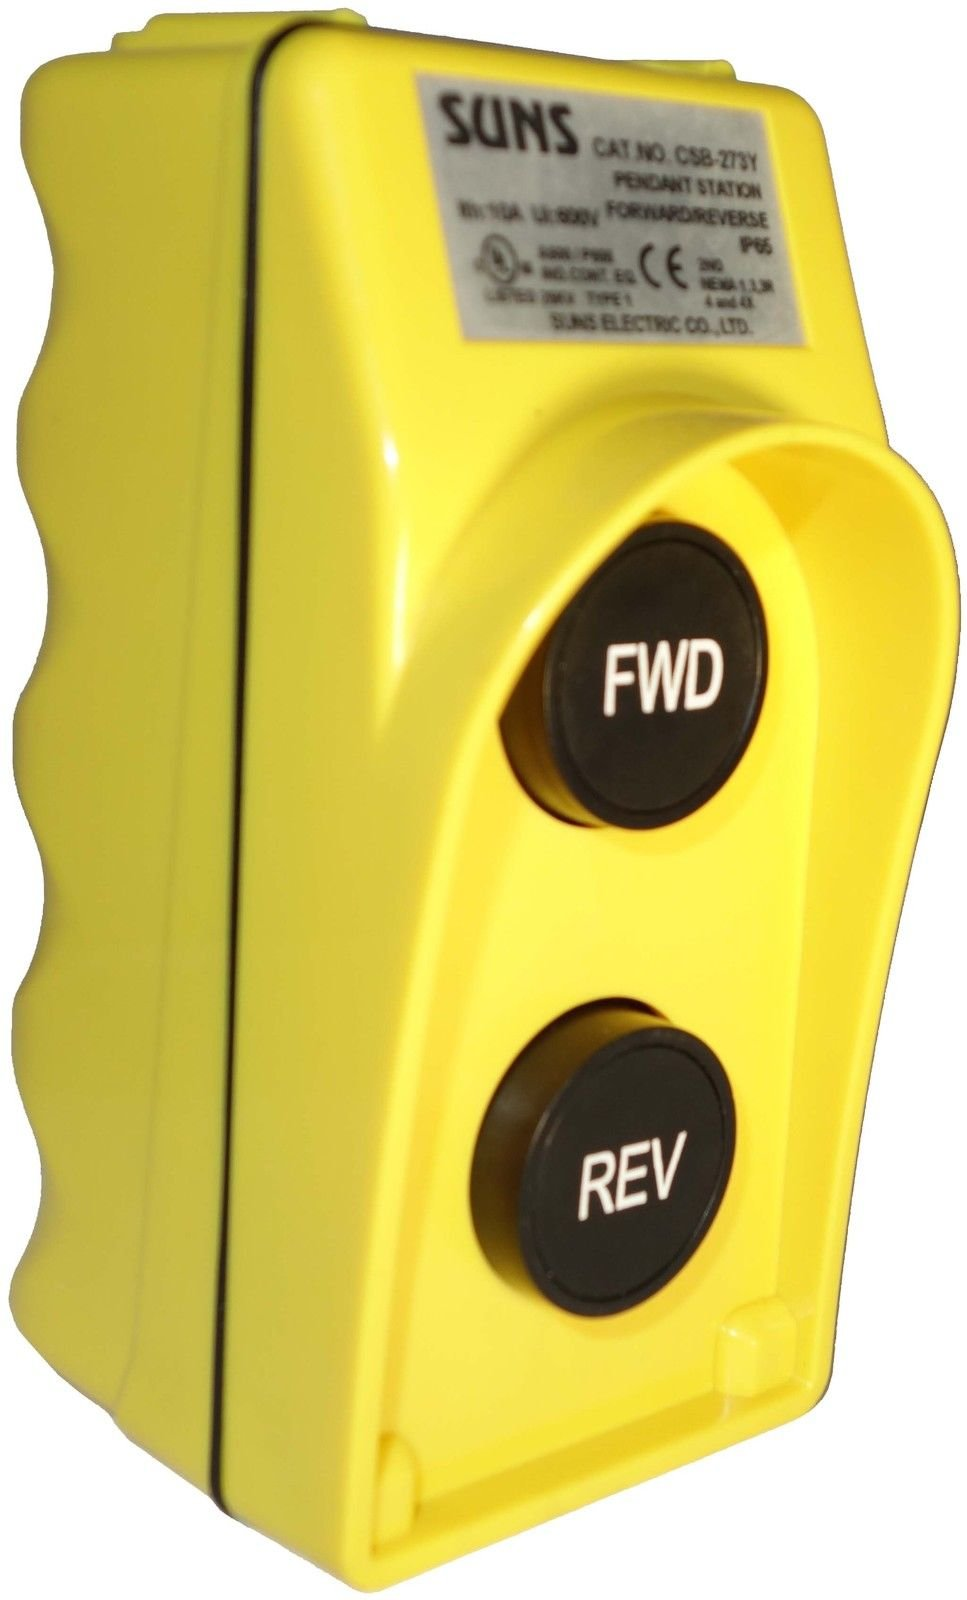 SUNS CSB-273Y UL Listed Yellow Forward/Reverse Pendant Control Station